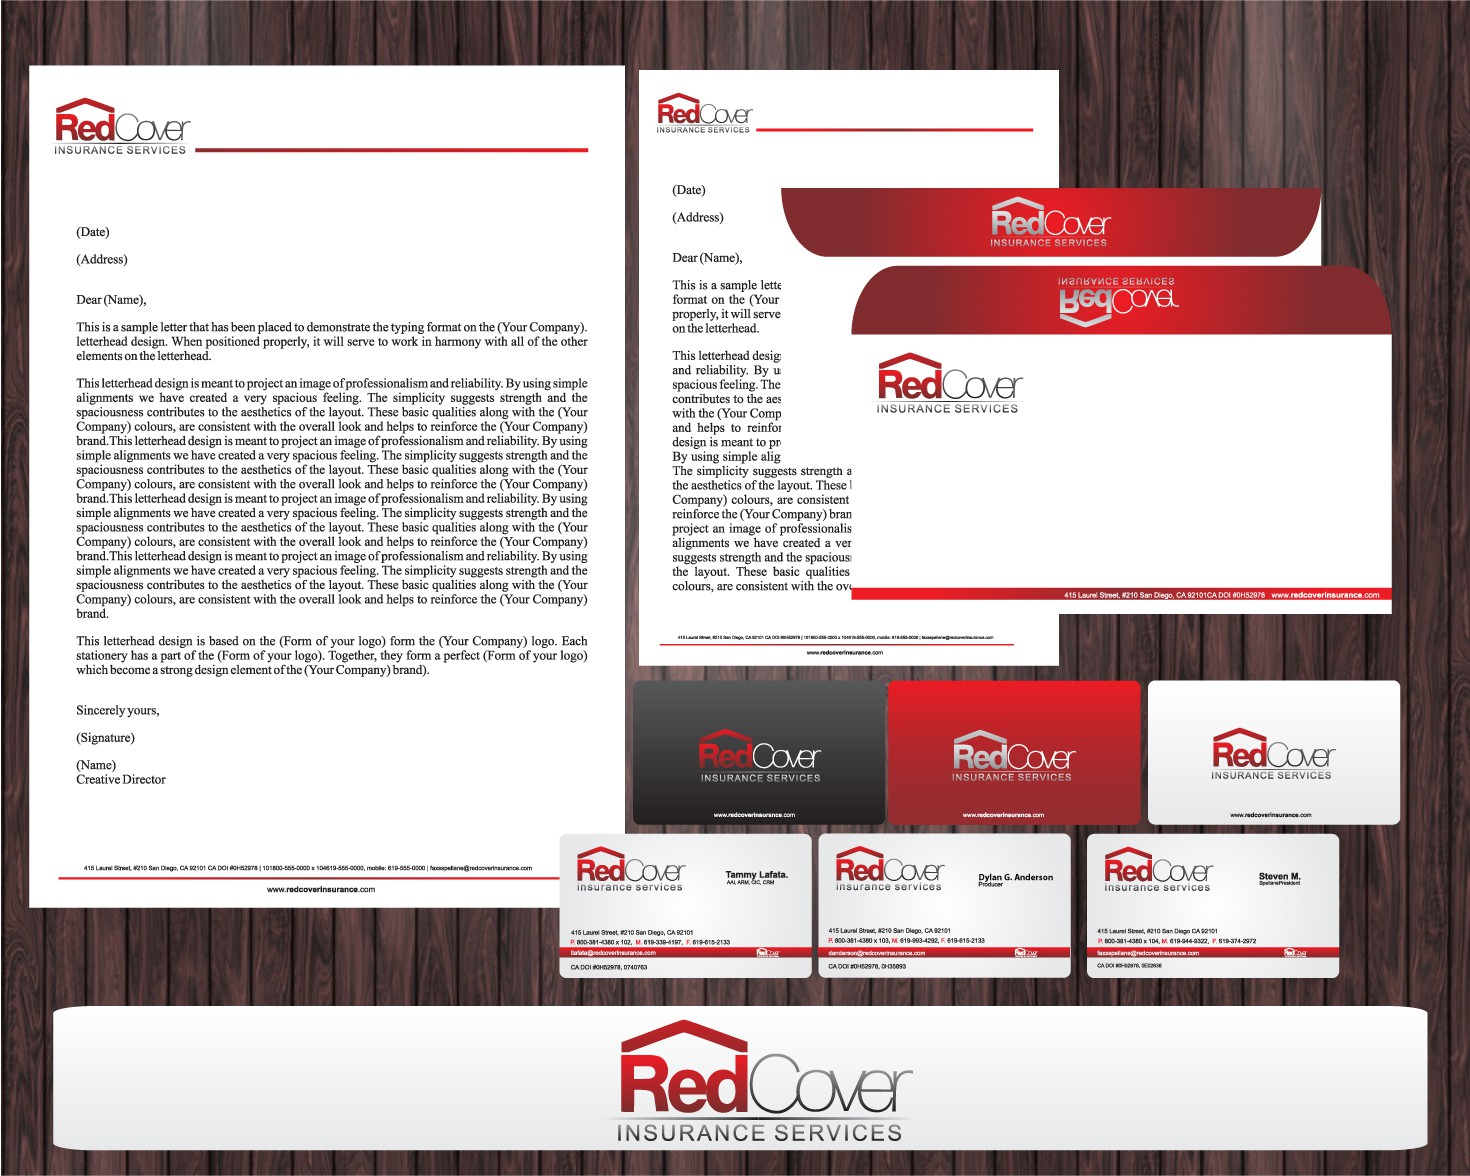 Business cards and stationary needed for Red Cover Insurance